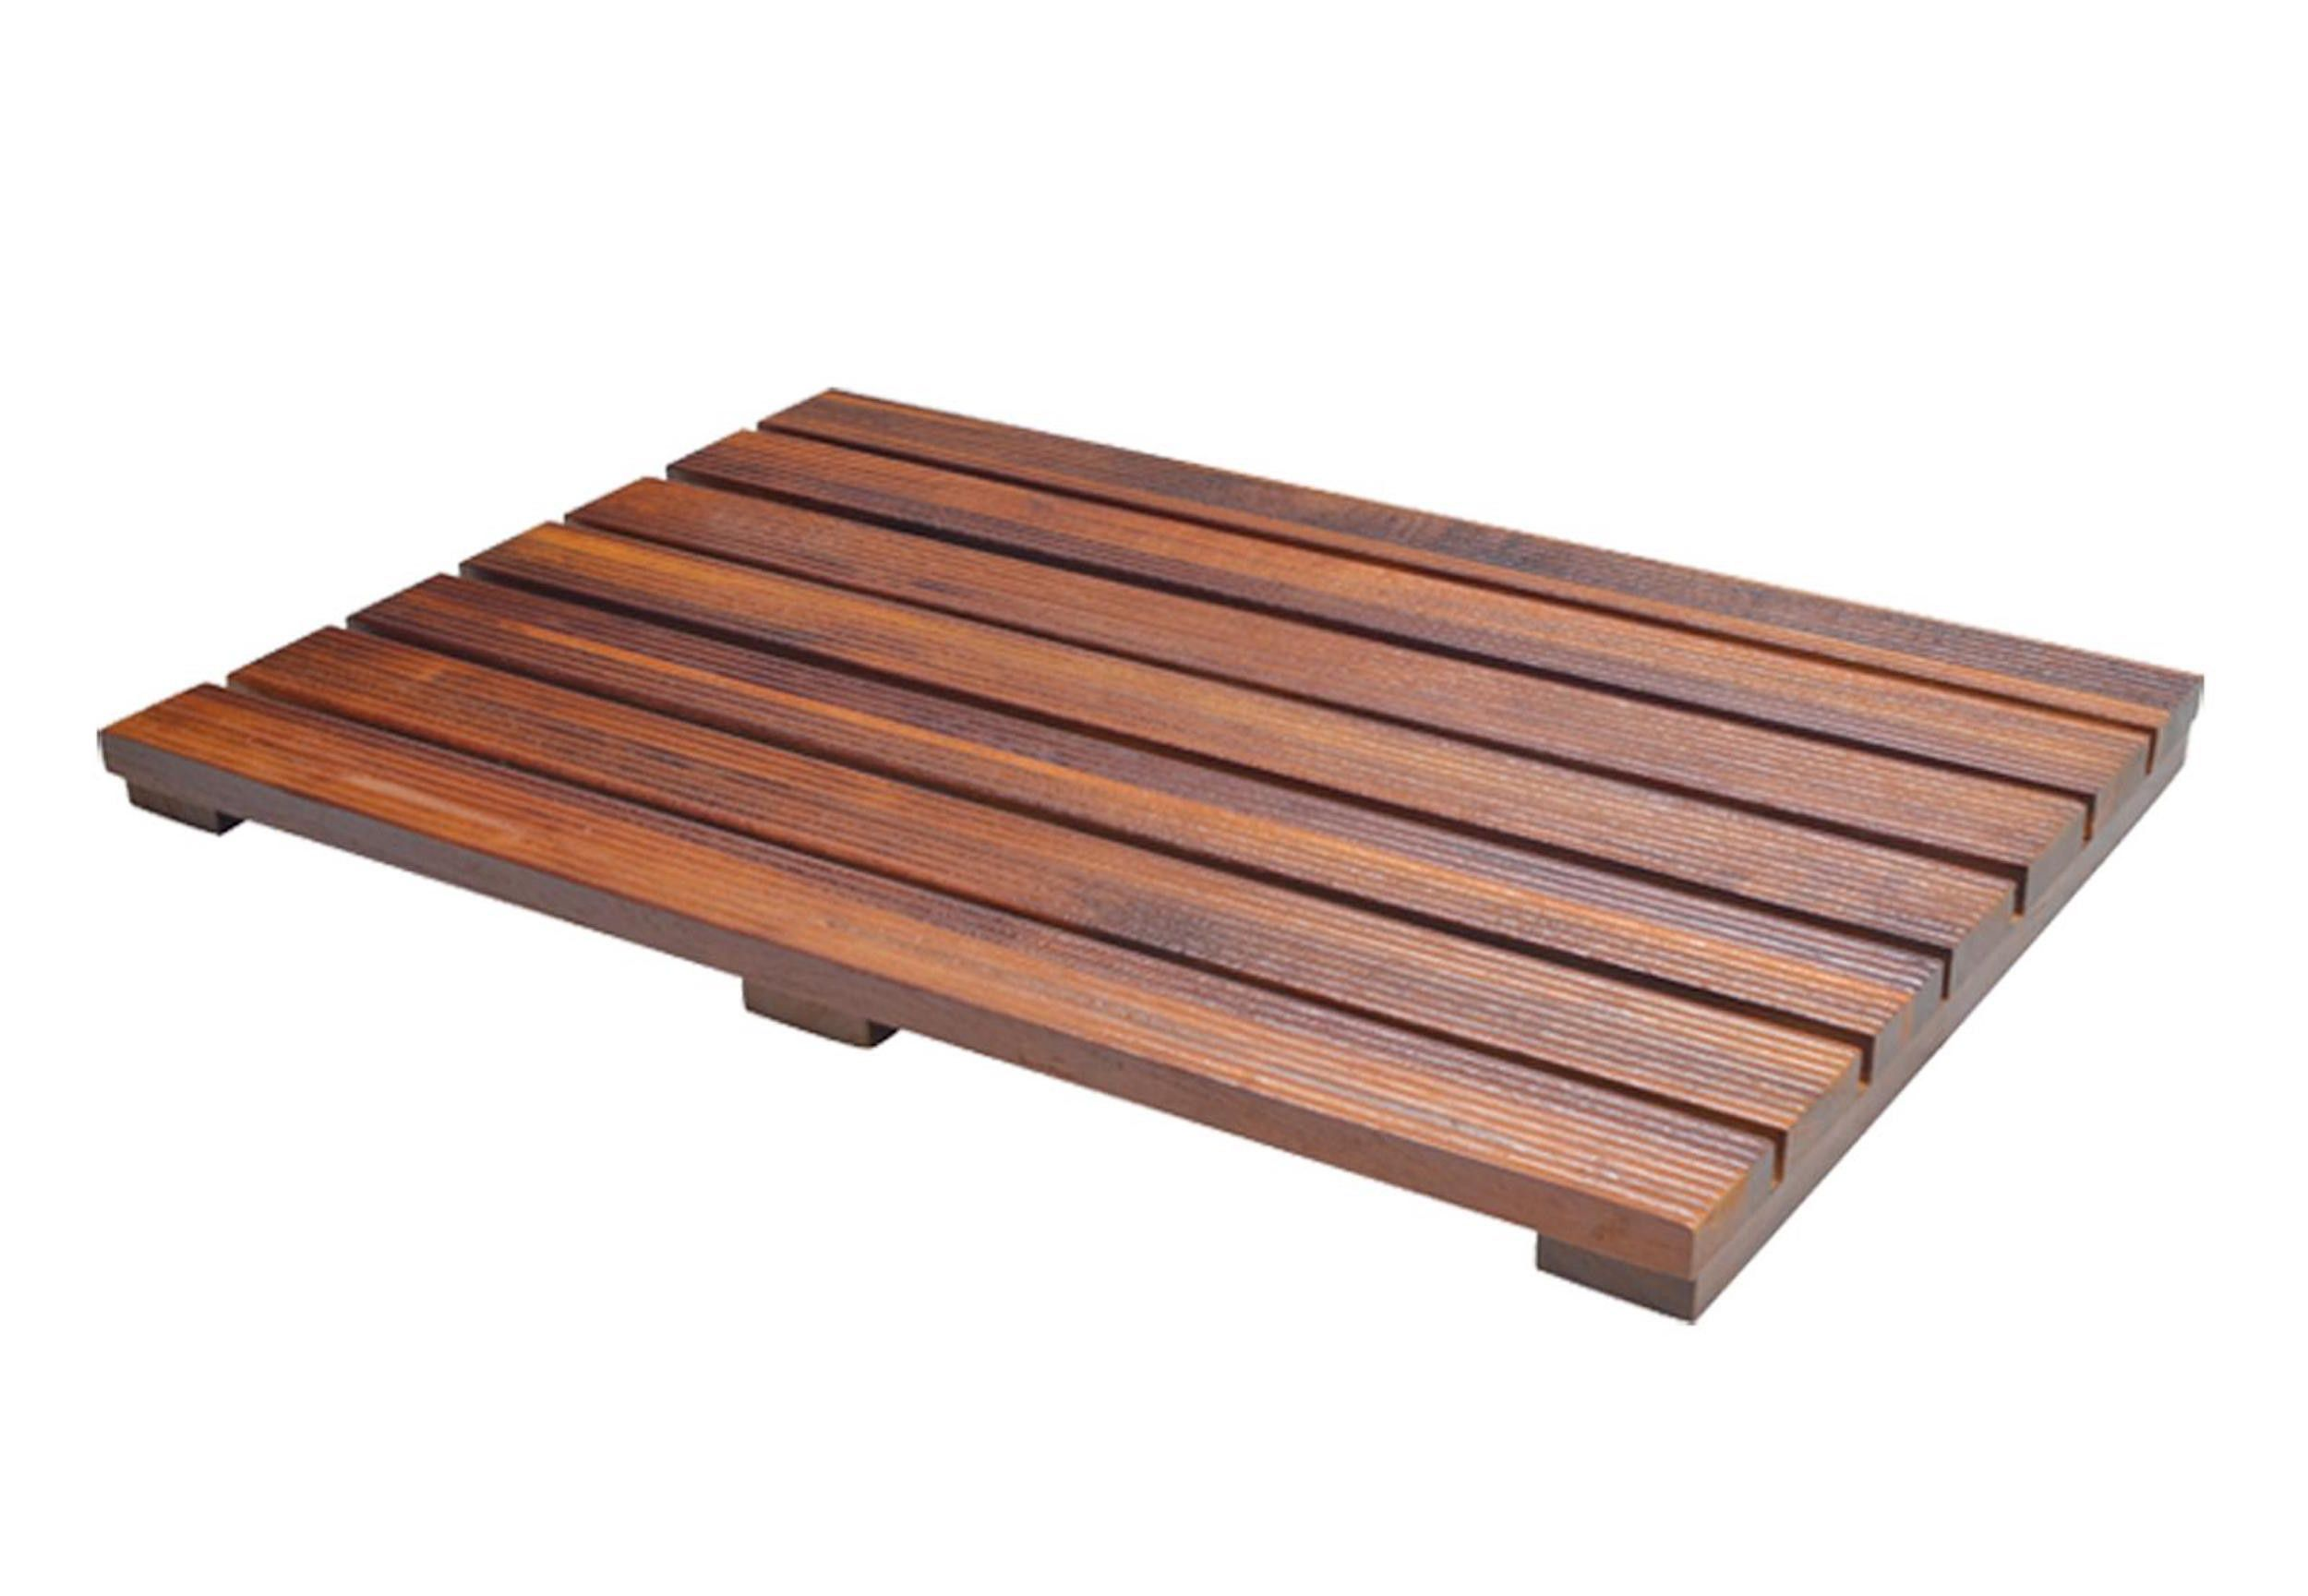 Teak Wood Bath Mat With Non Slip Feet For Use In Or Out Of ...